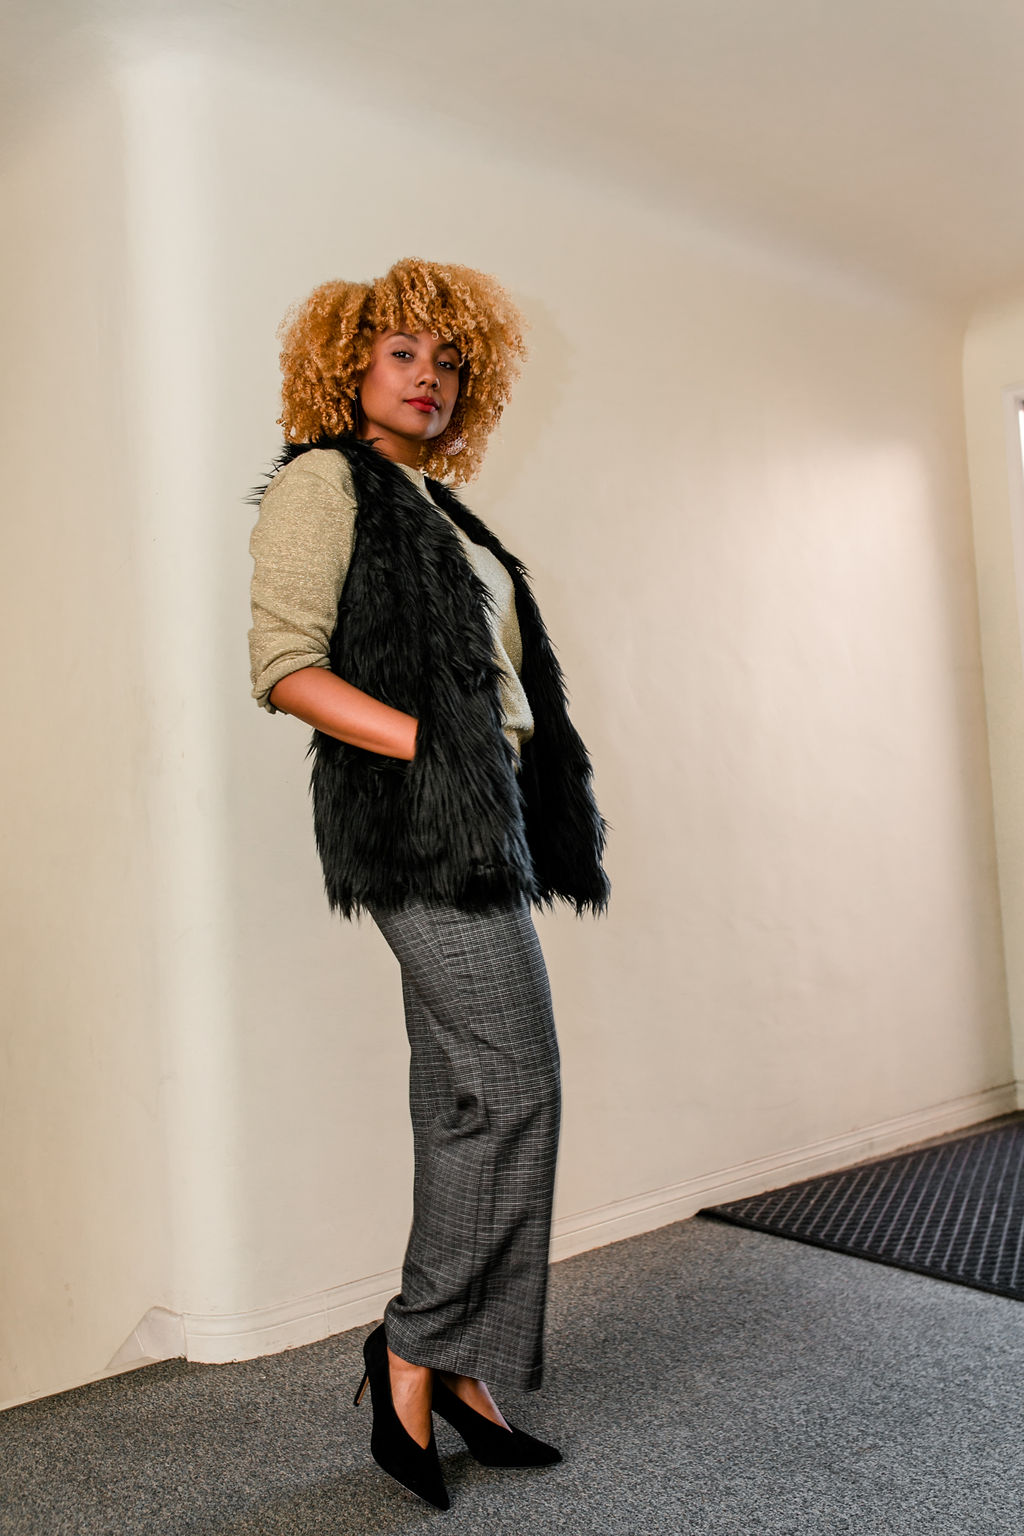 Black girl with curly blonde hair wearing slacks, fur vest and gold sweater- reflect